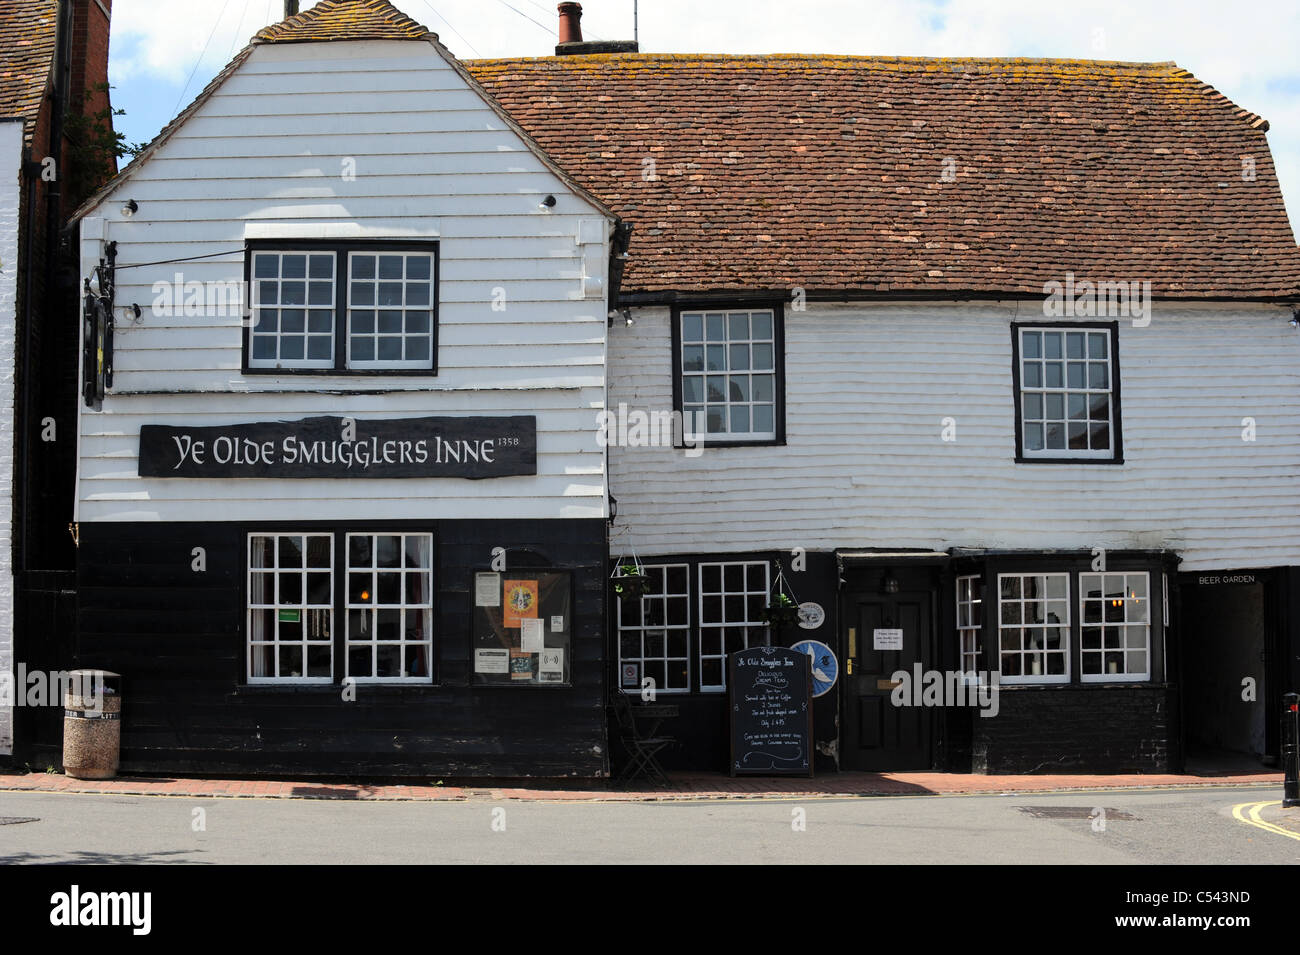 Ye Olde Smugglers Inne Built In 1358 And Now A Hotel In The Centre Of  Alfriston